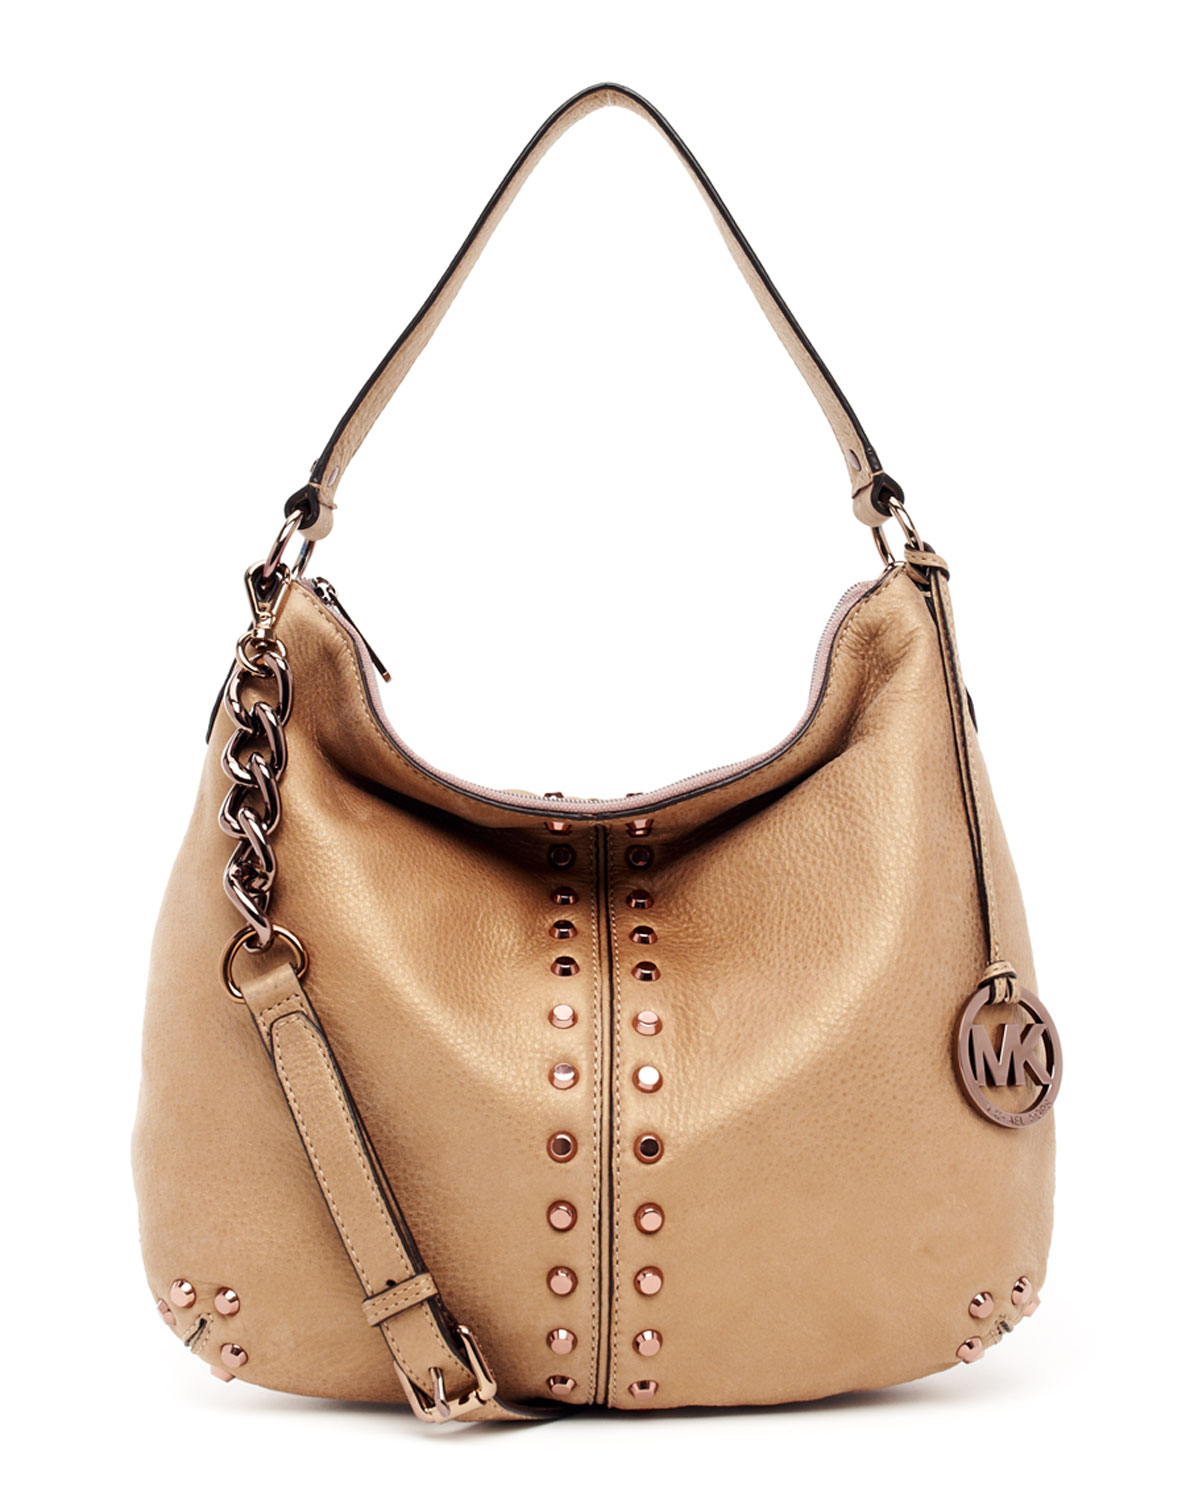 f737a71779ea ... sale lyst michael kors uptown astor large shoulder bag in natural ddabc  da1d3